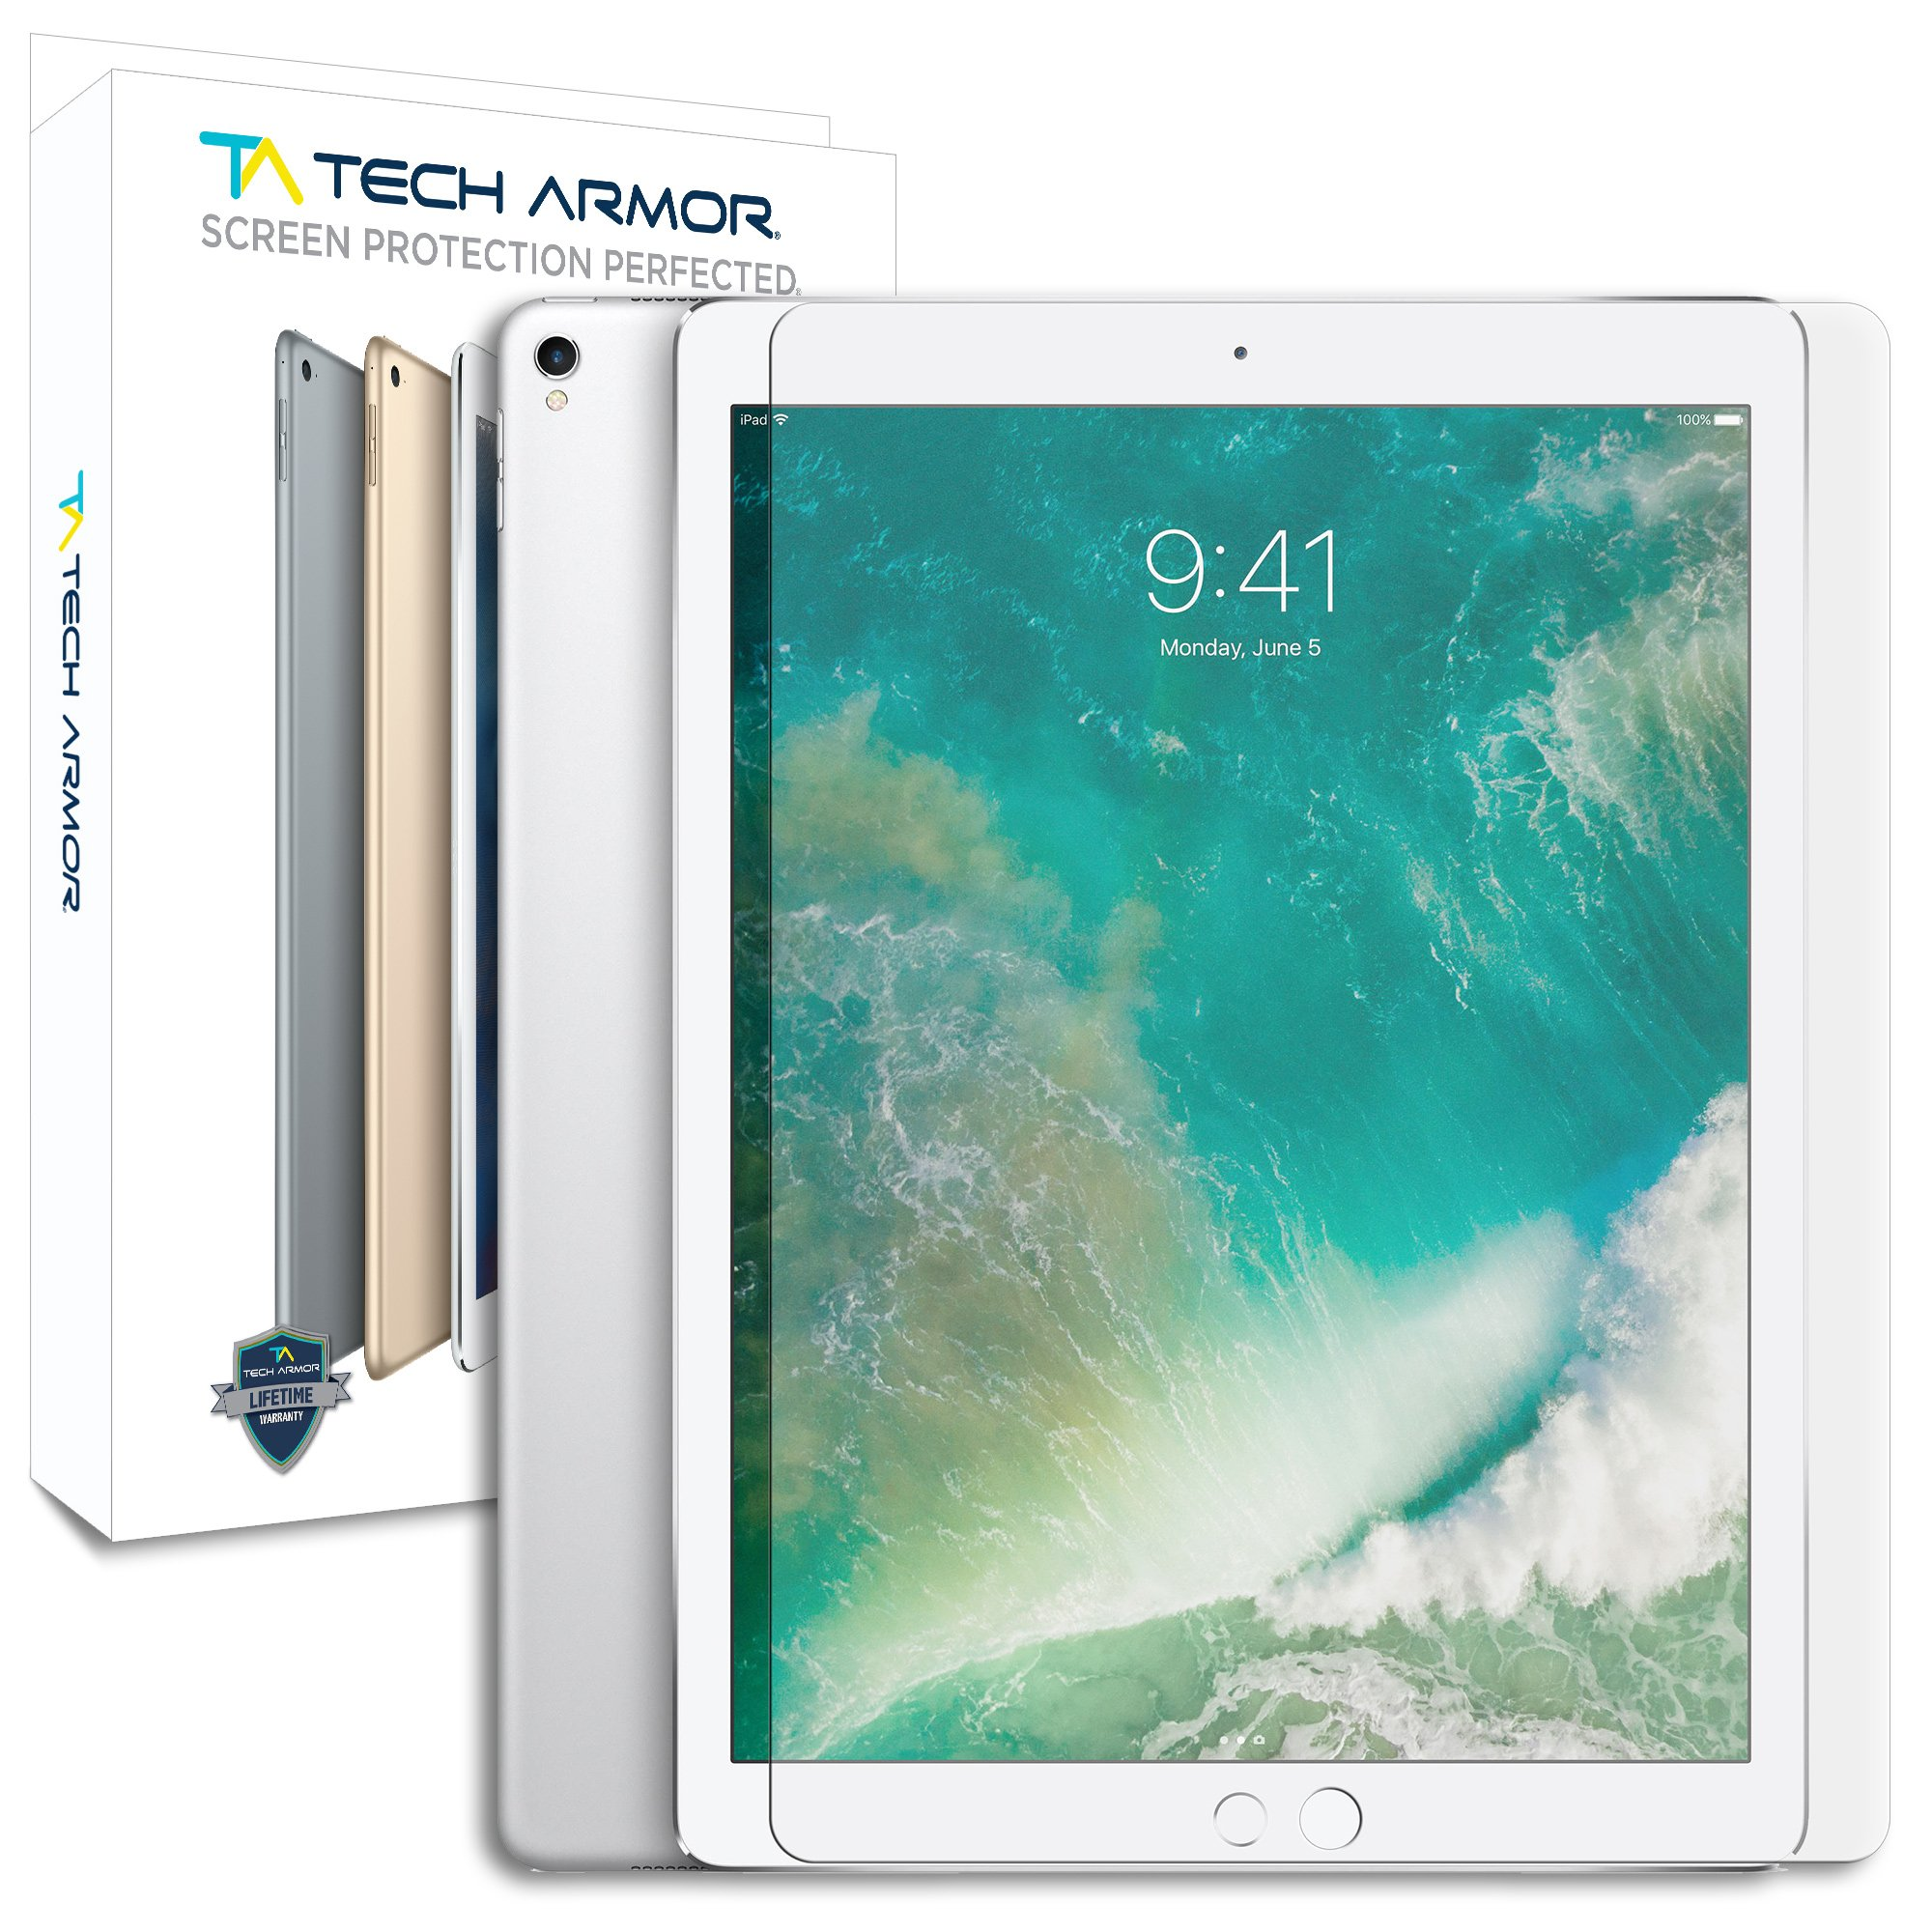 Tech Armor Ballistic Glass Screen Protector for Apple iPad Pro 12.9-inch (NEW 2017) [1-pack]